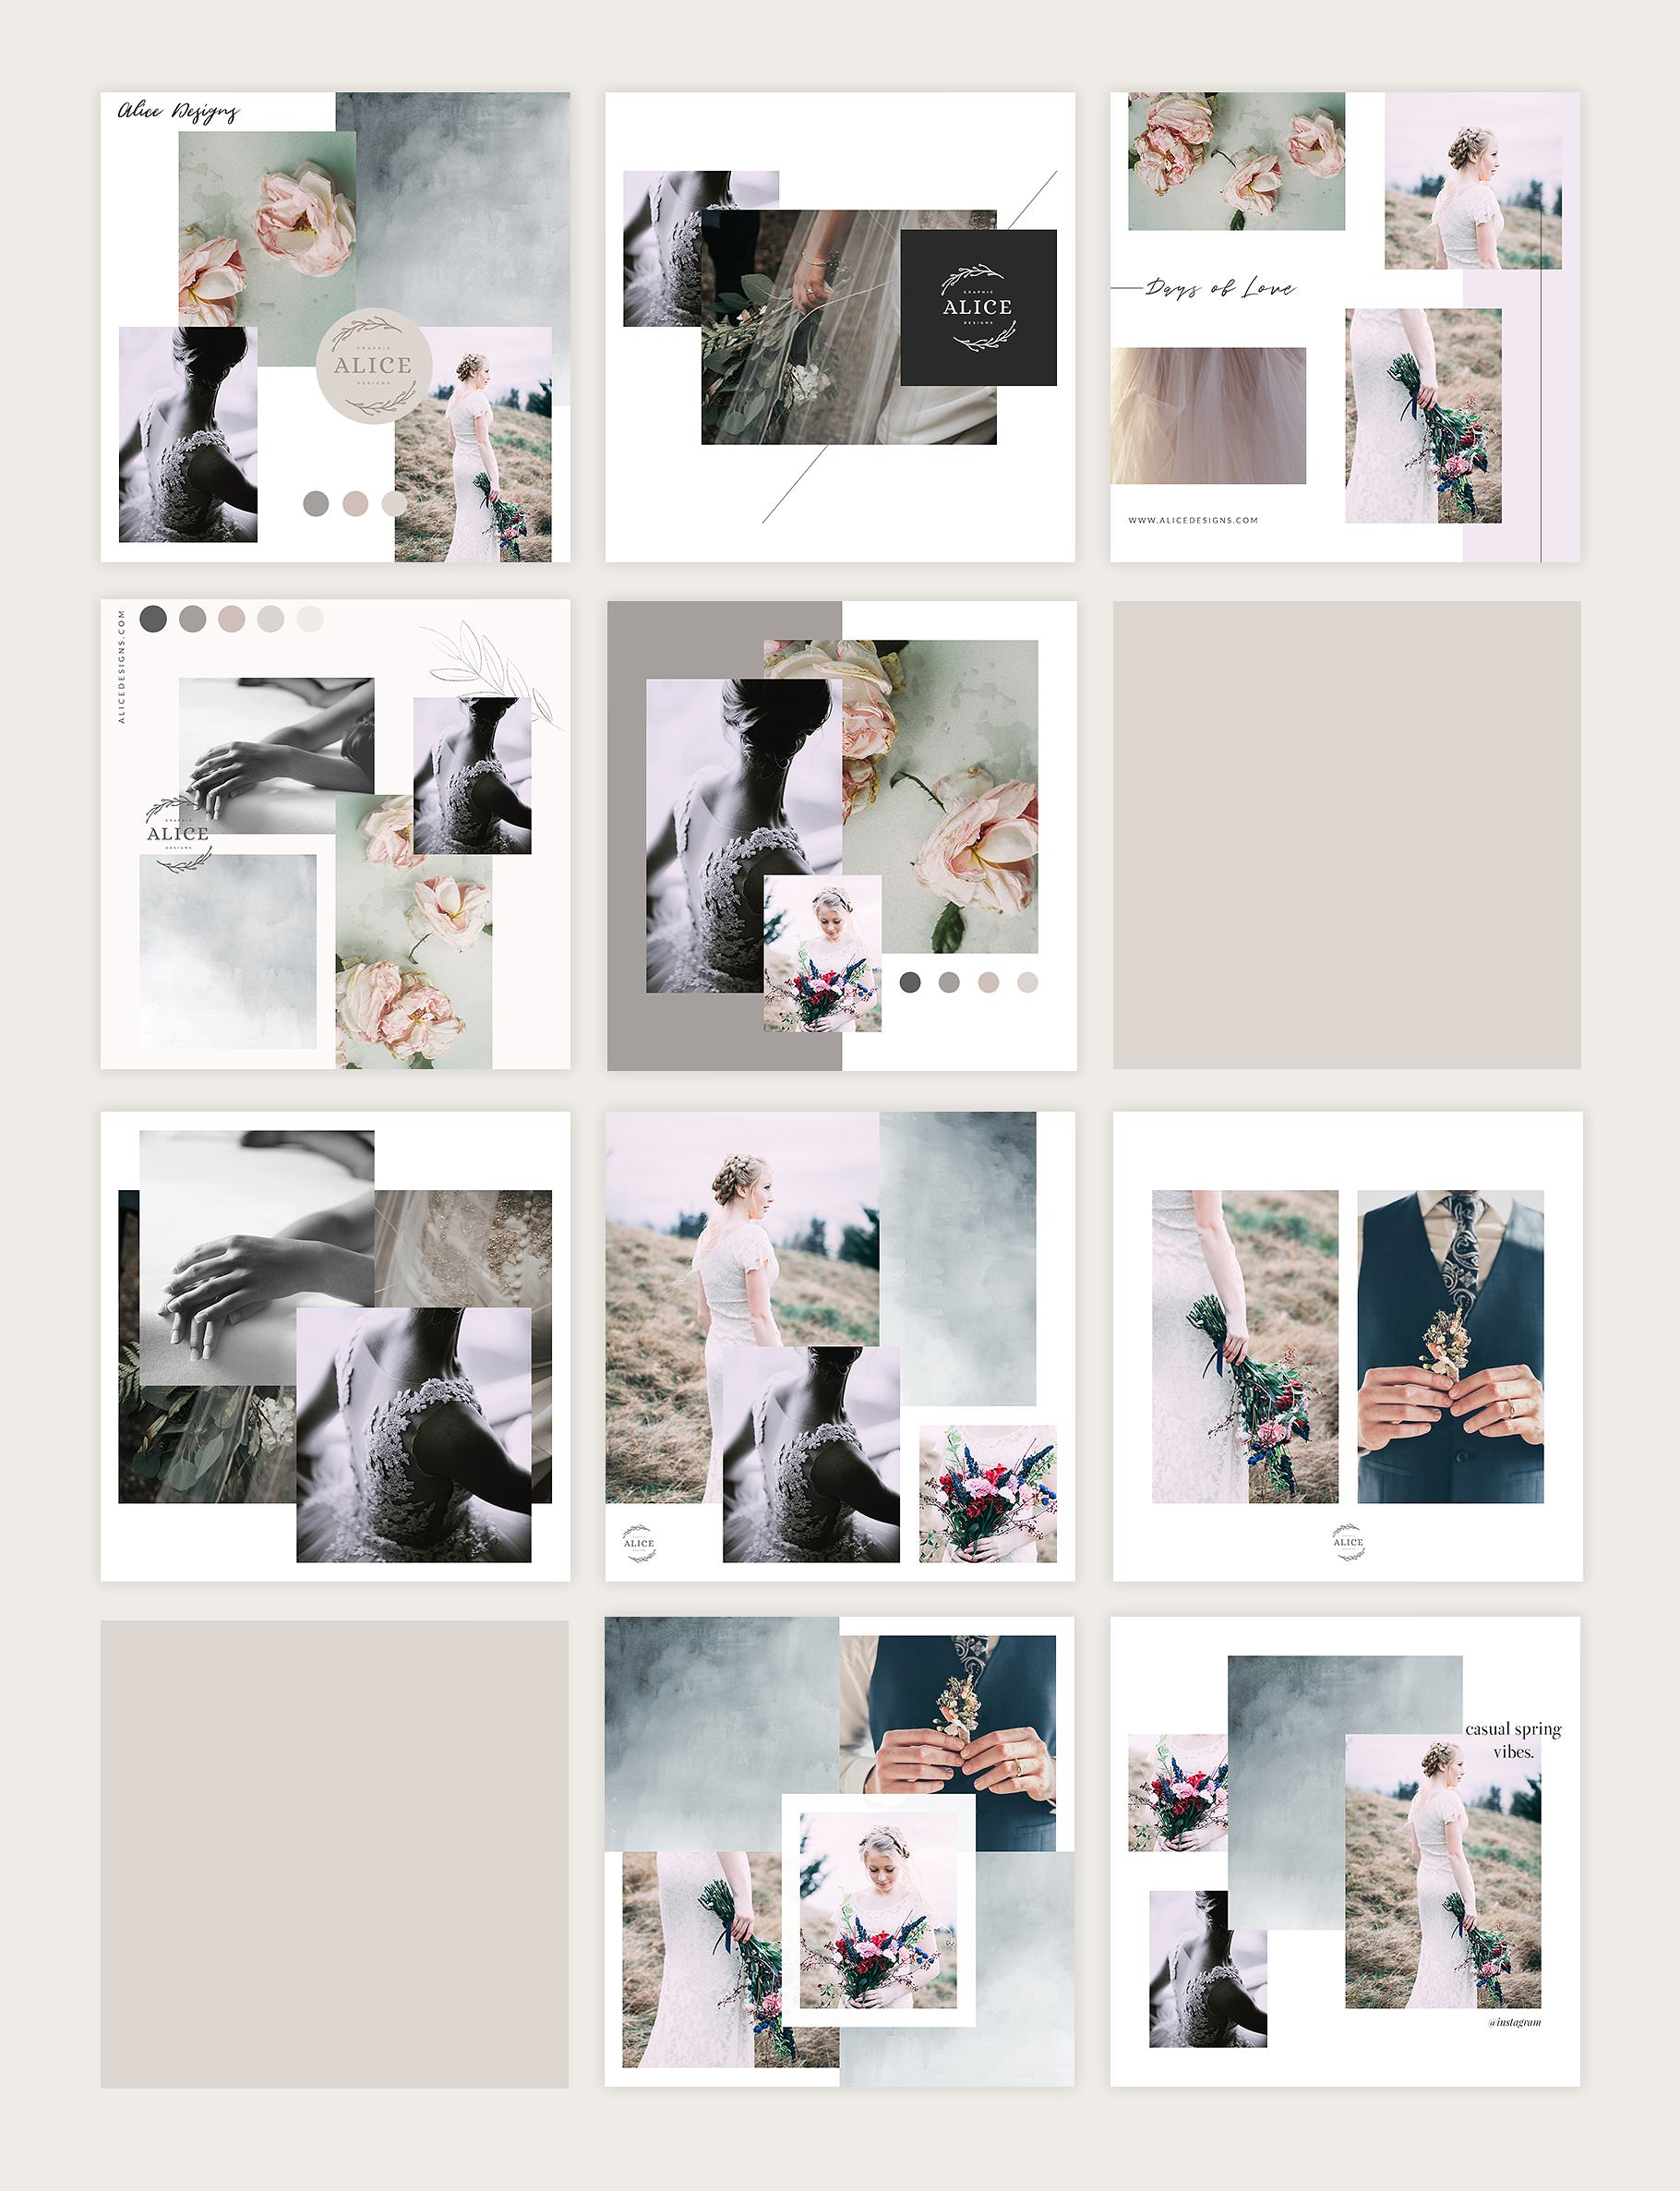 Creative Instagram post templates in a collage mood board style.